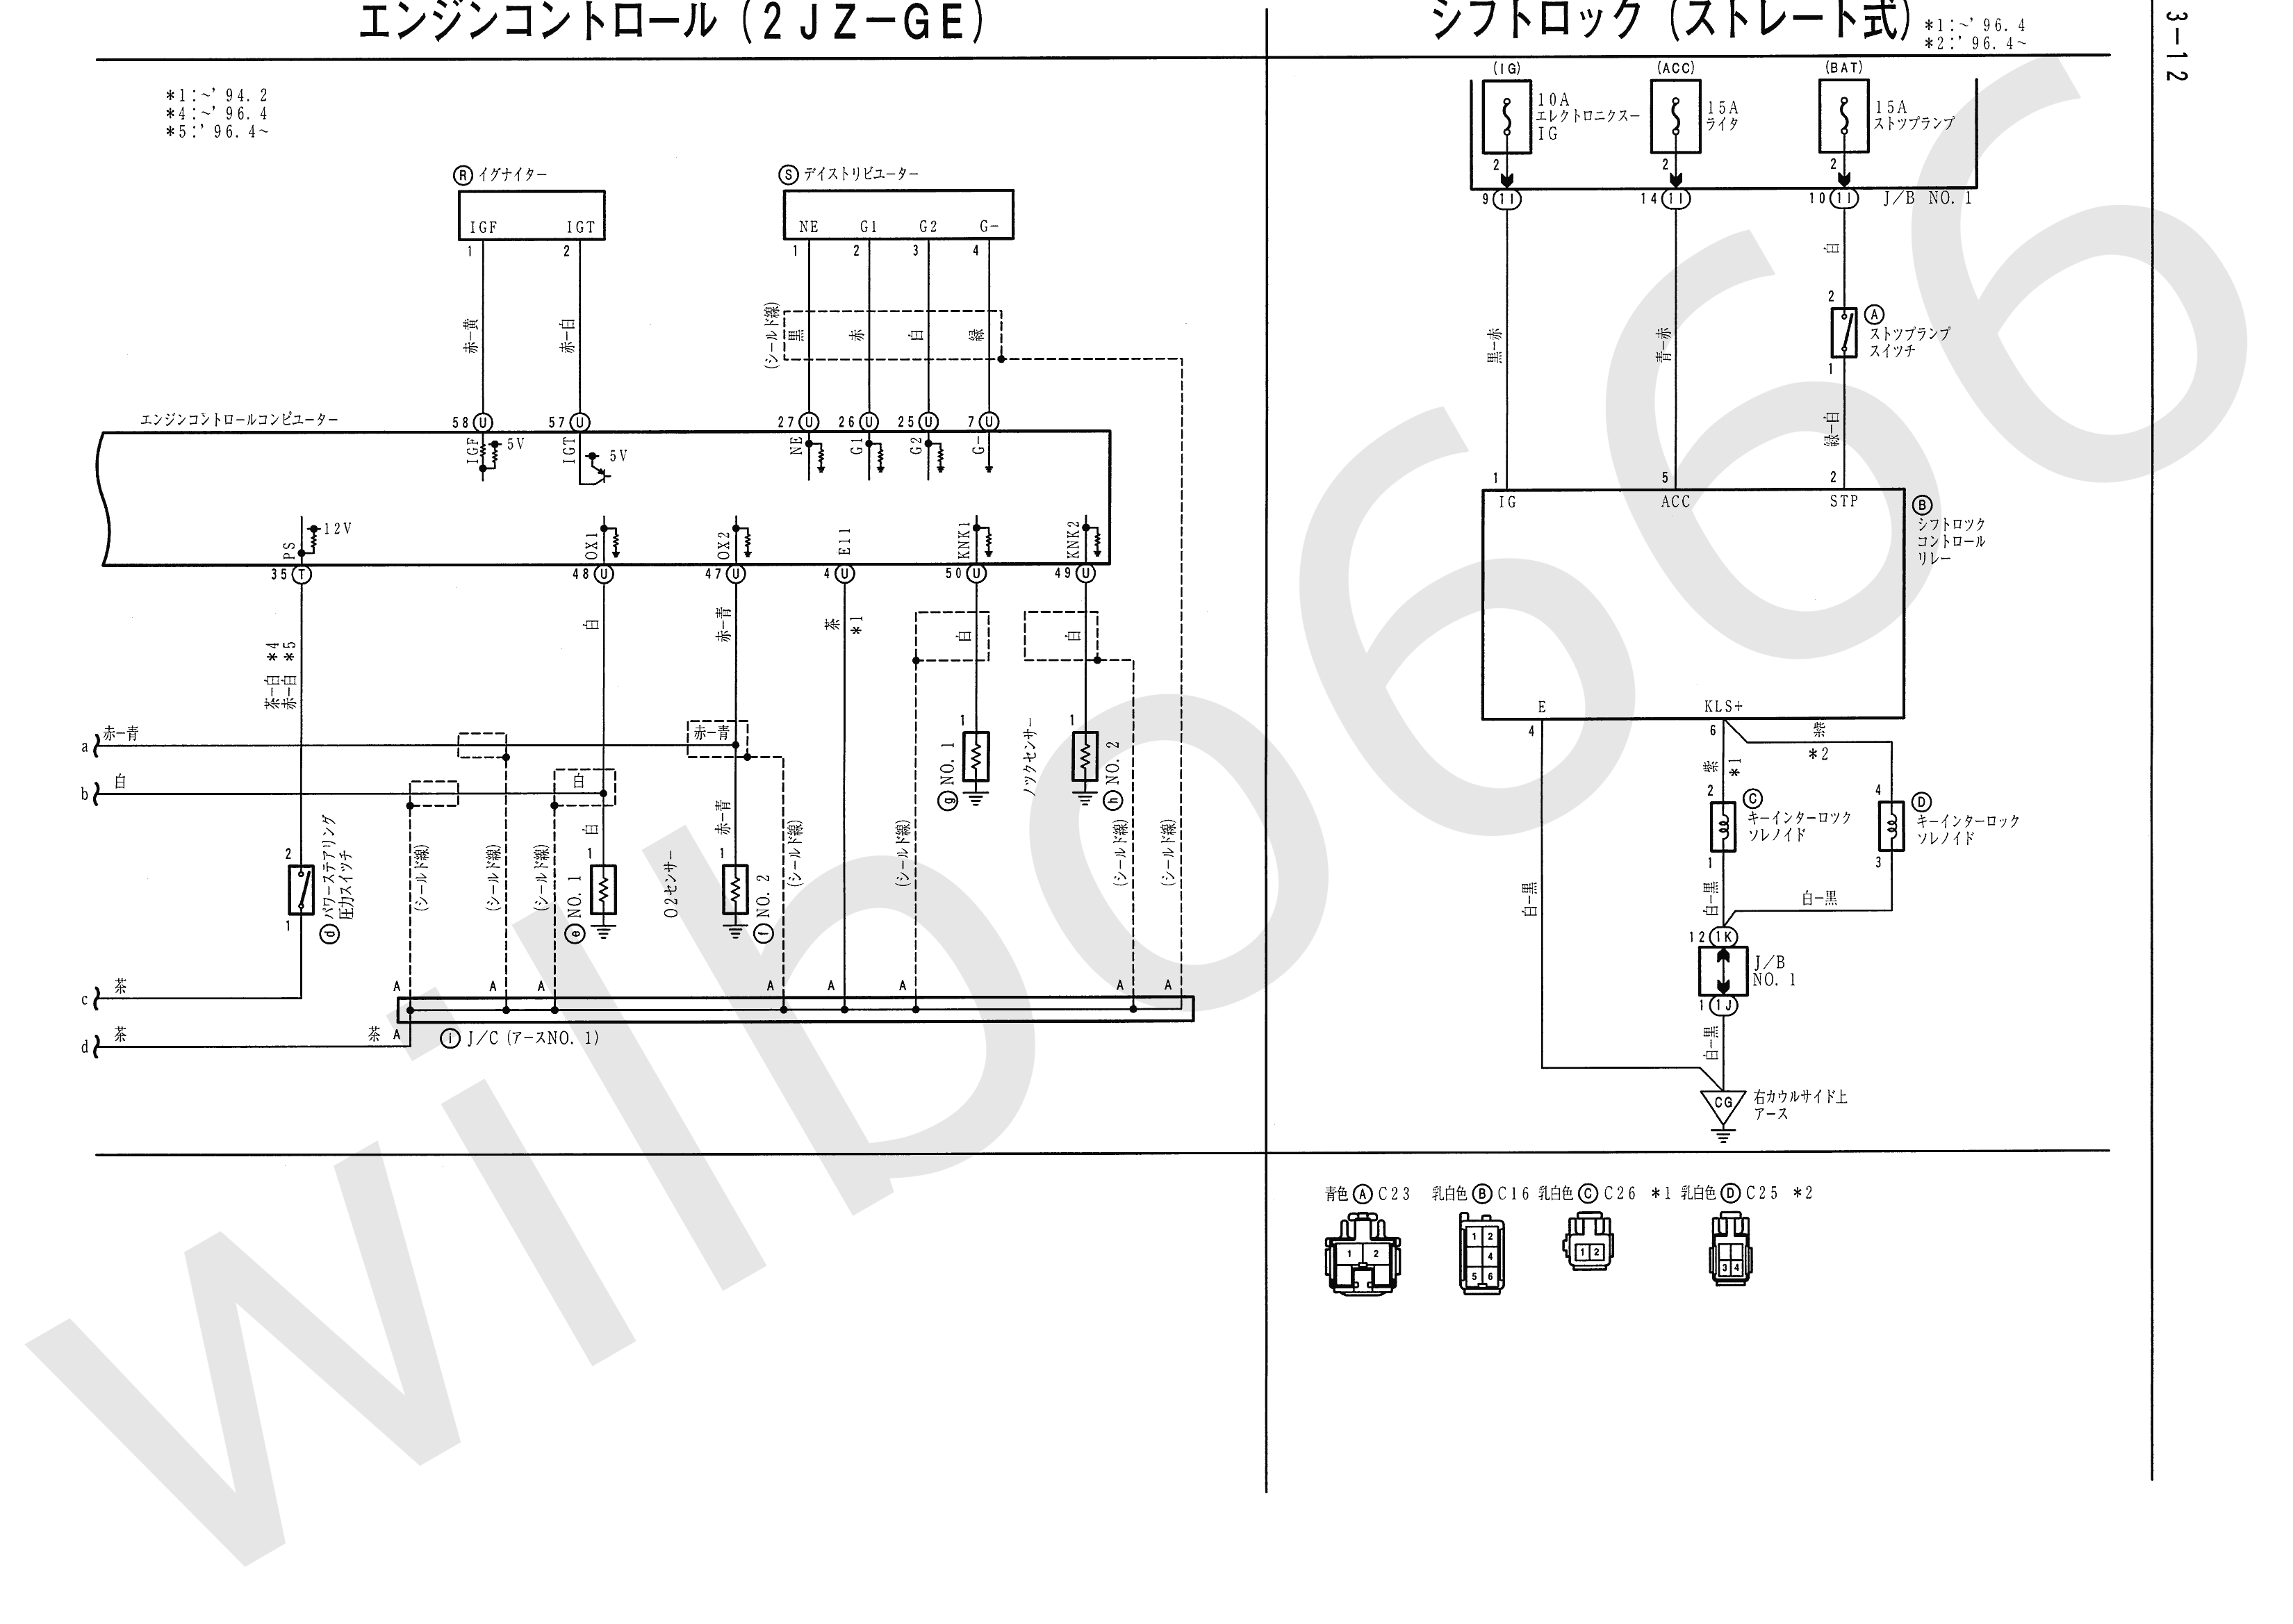 Wilbo666 2jz Ge Jza80 Supra Engine Wiring Obd2 To Obd1 Distributor Diagram Electrical Book 6742505